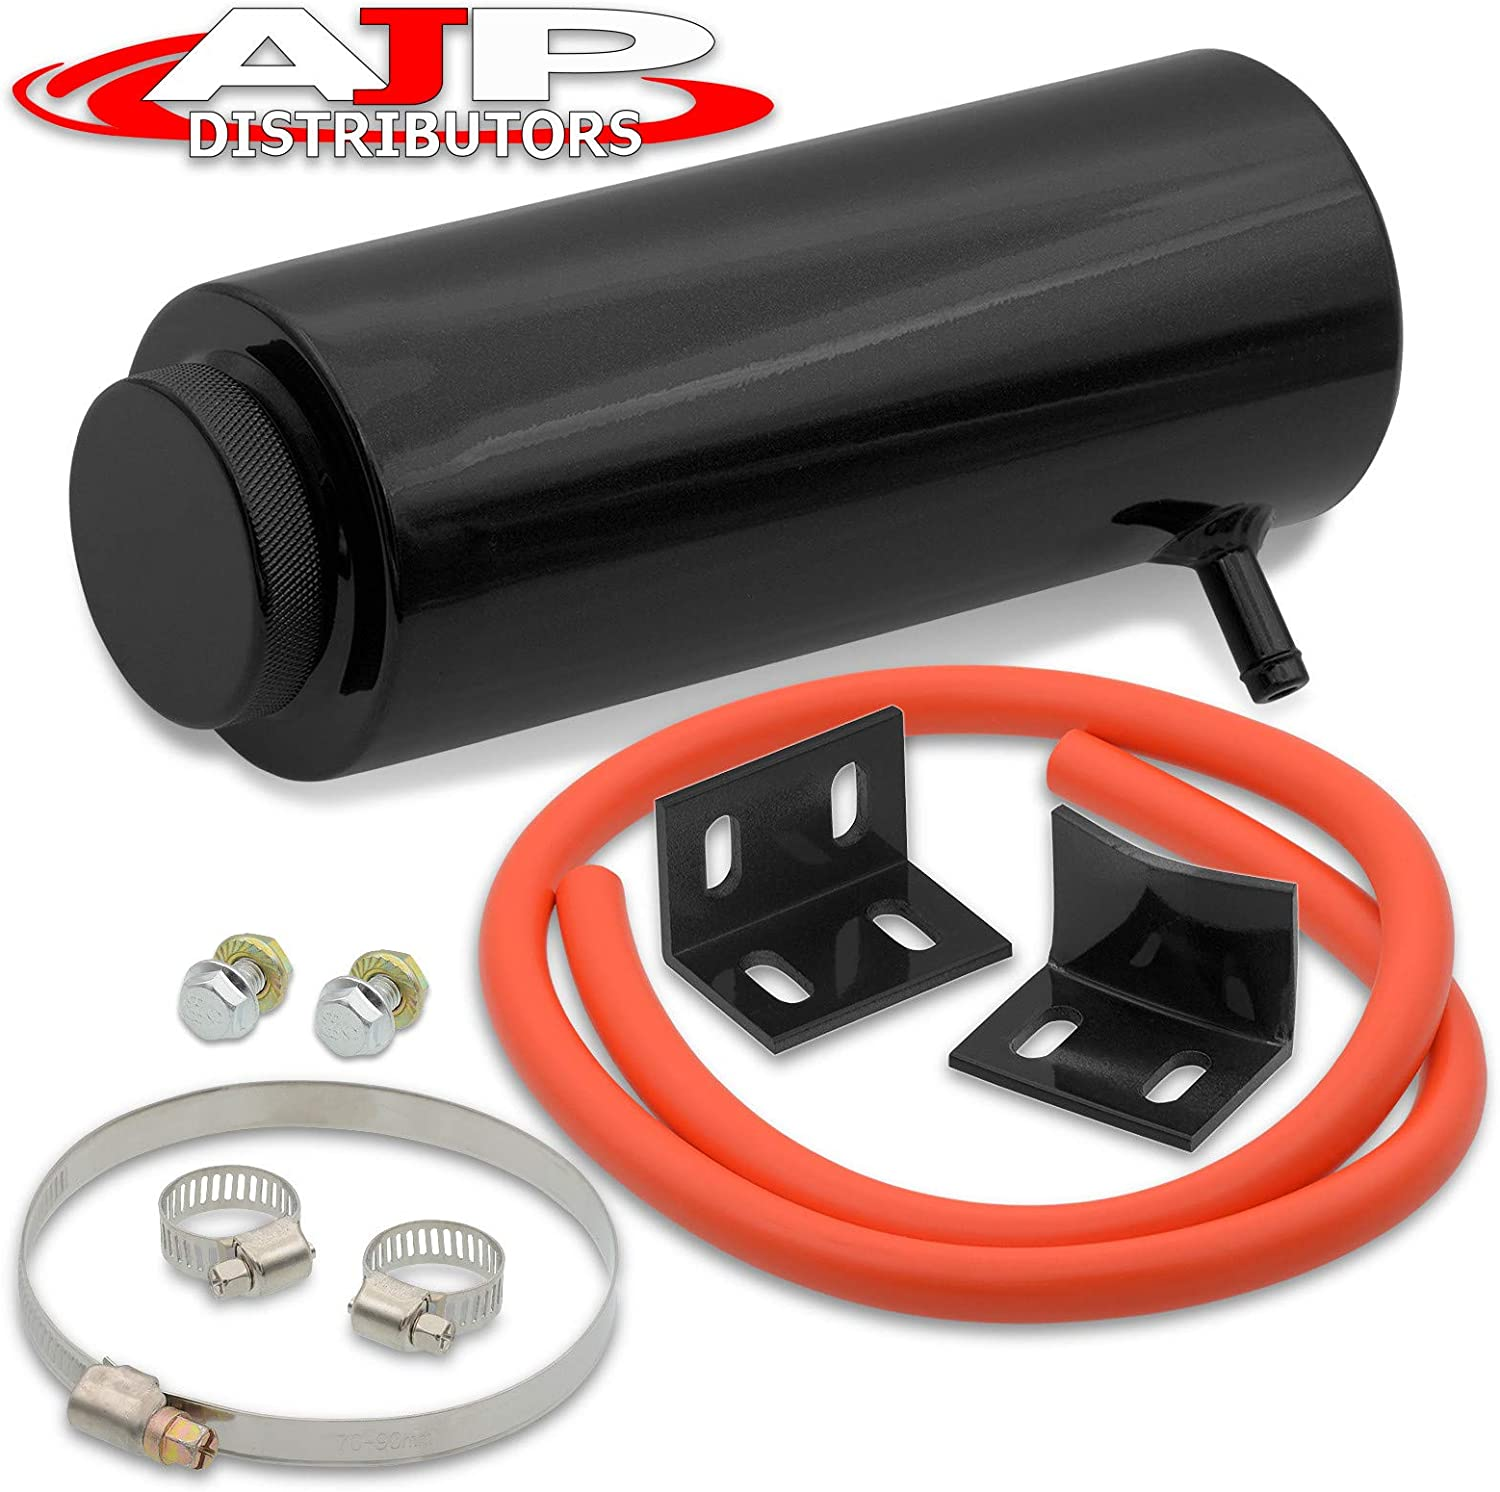 Auto Car Coolant Water Radiator Bottle Tank Reservoir for Ford Focus 12-16 15 14